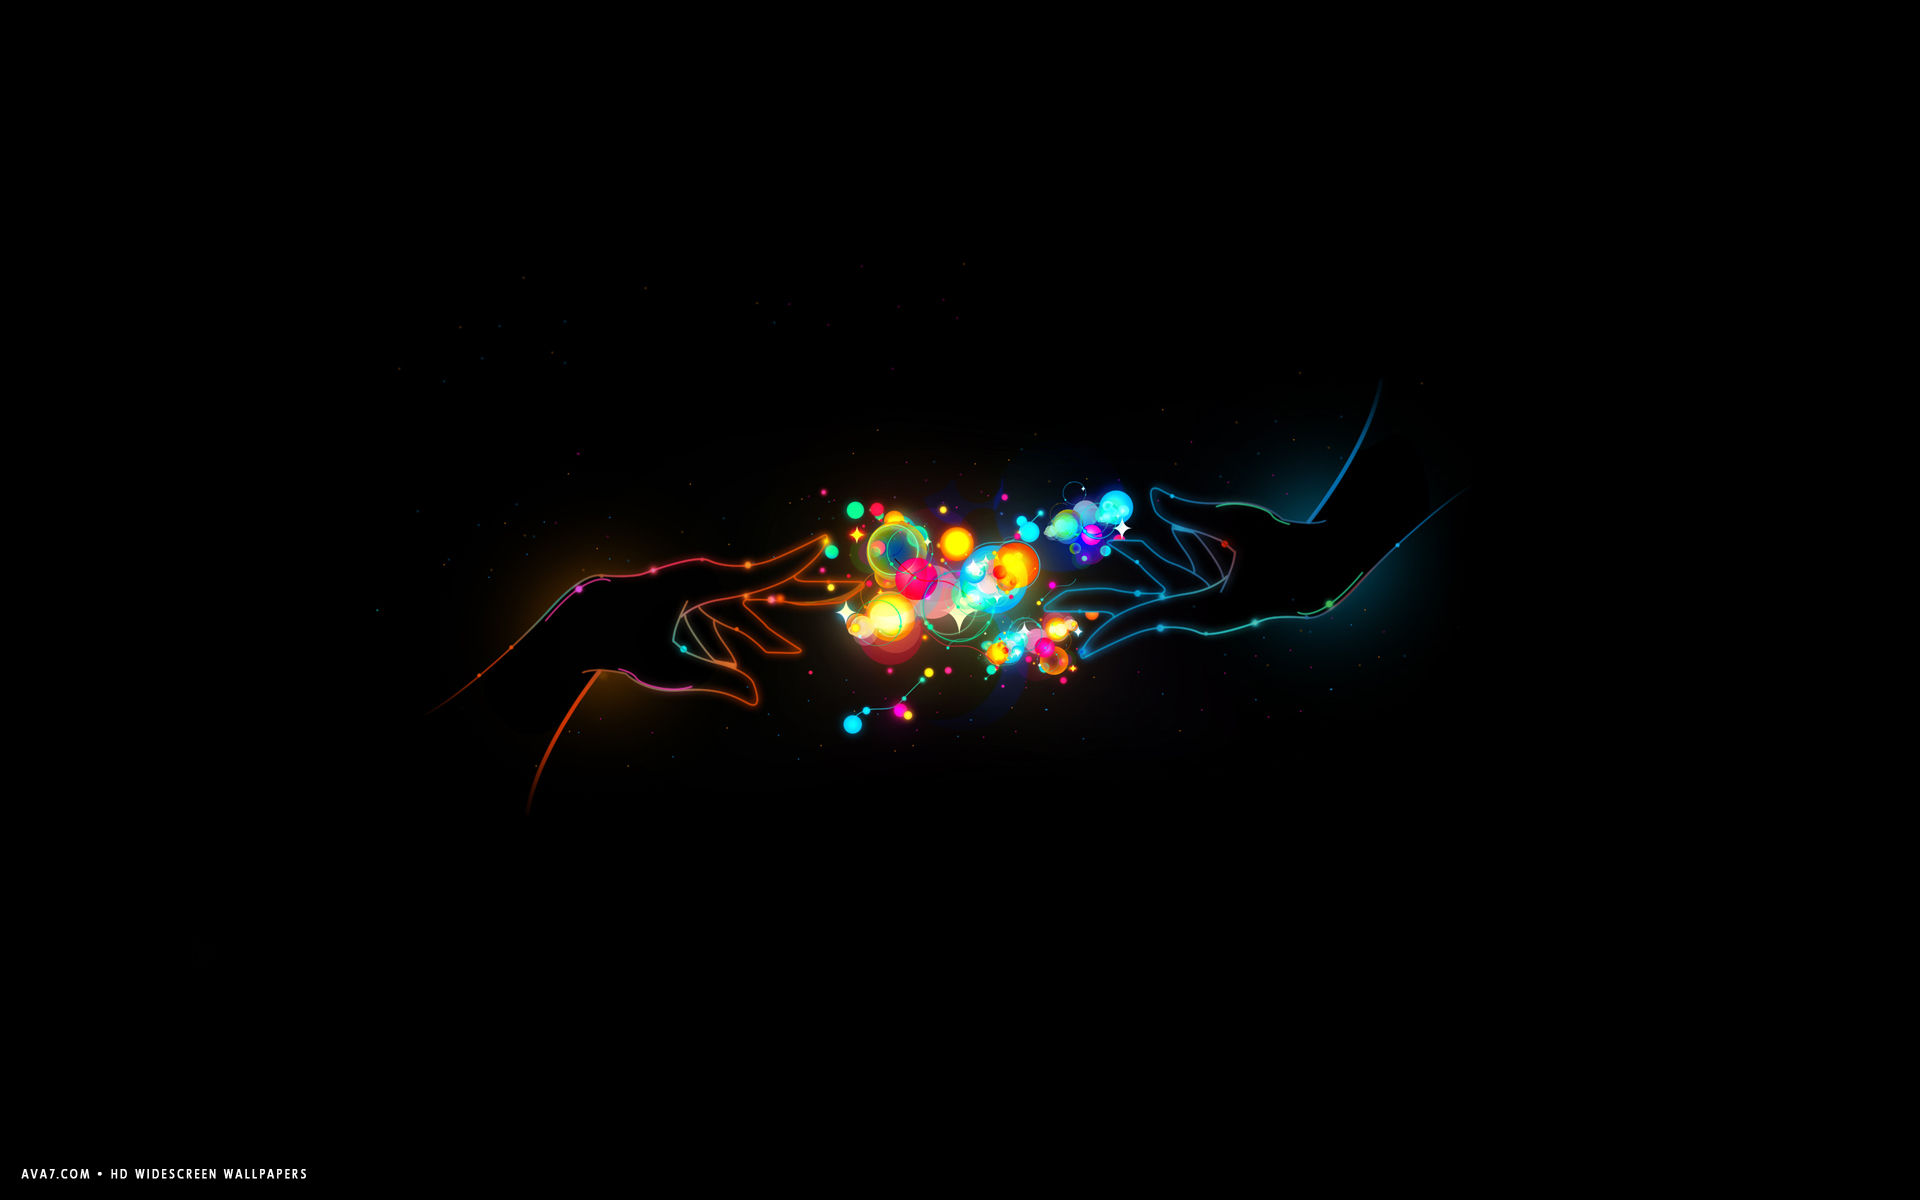 Love Romantic Abstract Artistic Colorful Hands Magic Hd Widescreen